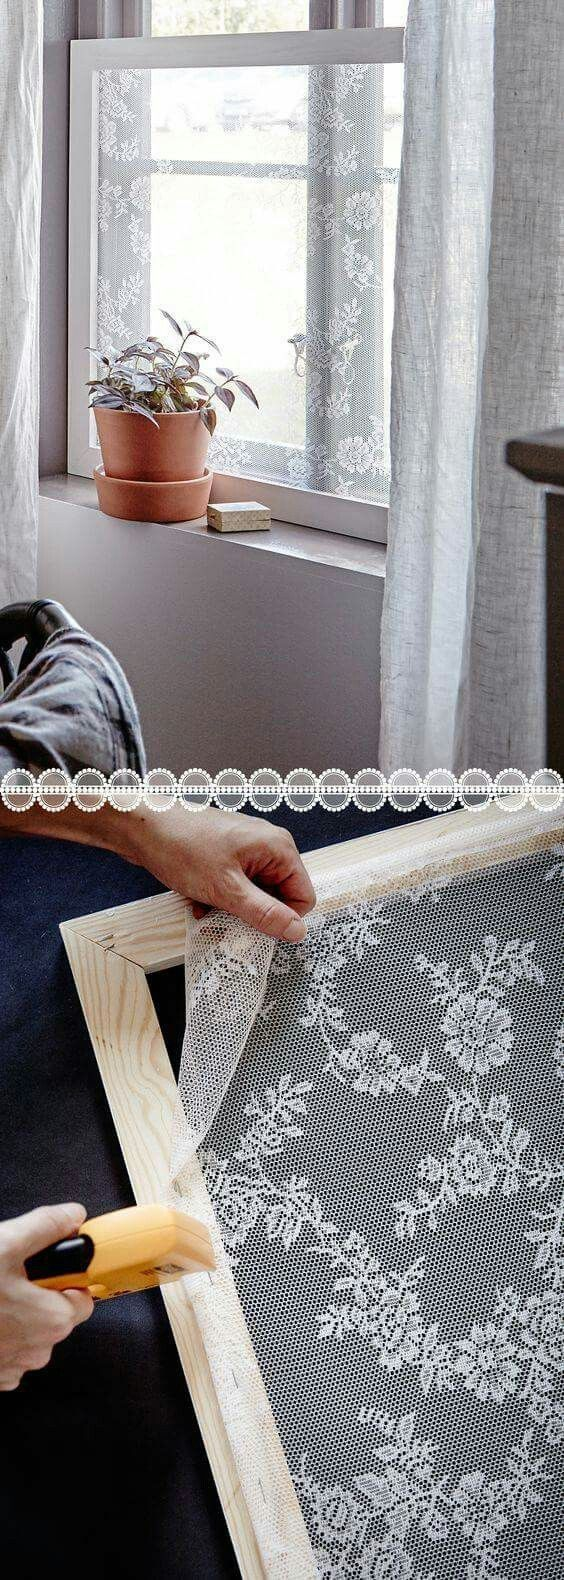 Window screens made from lace by Diana Drache